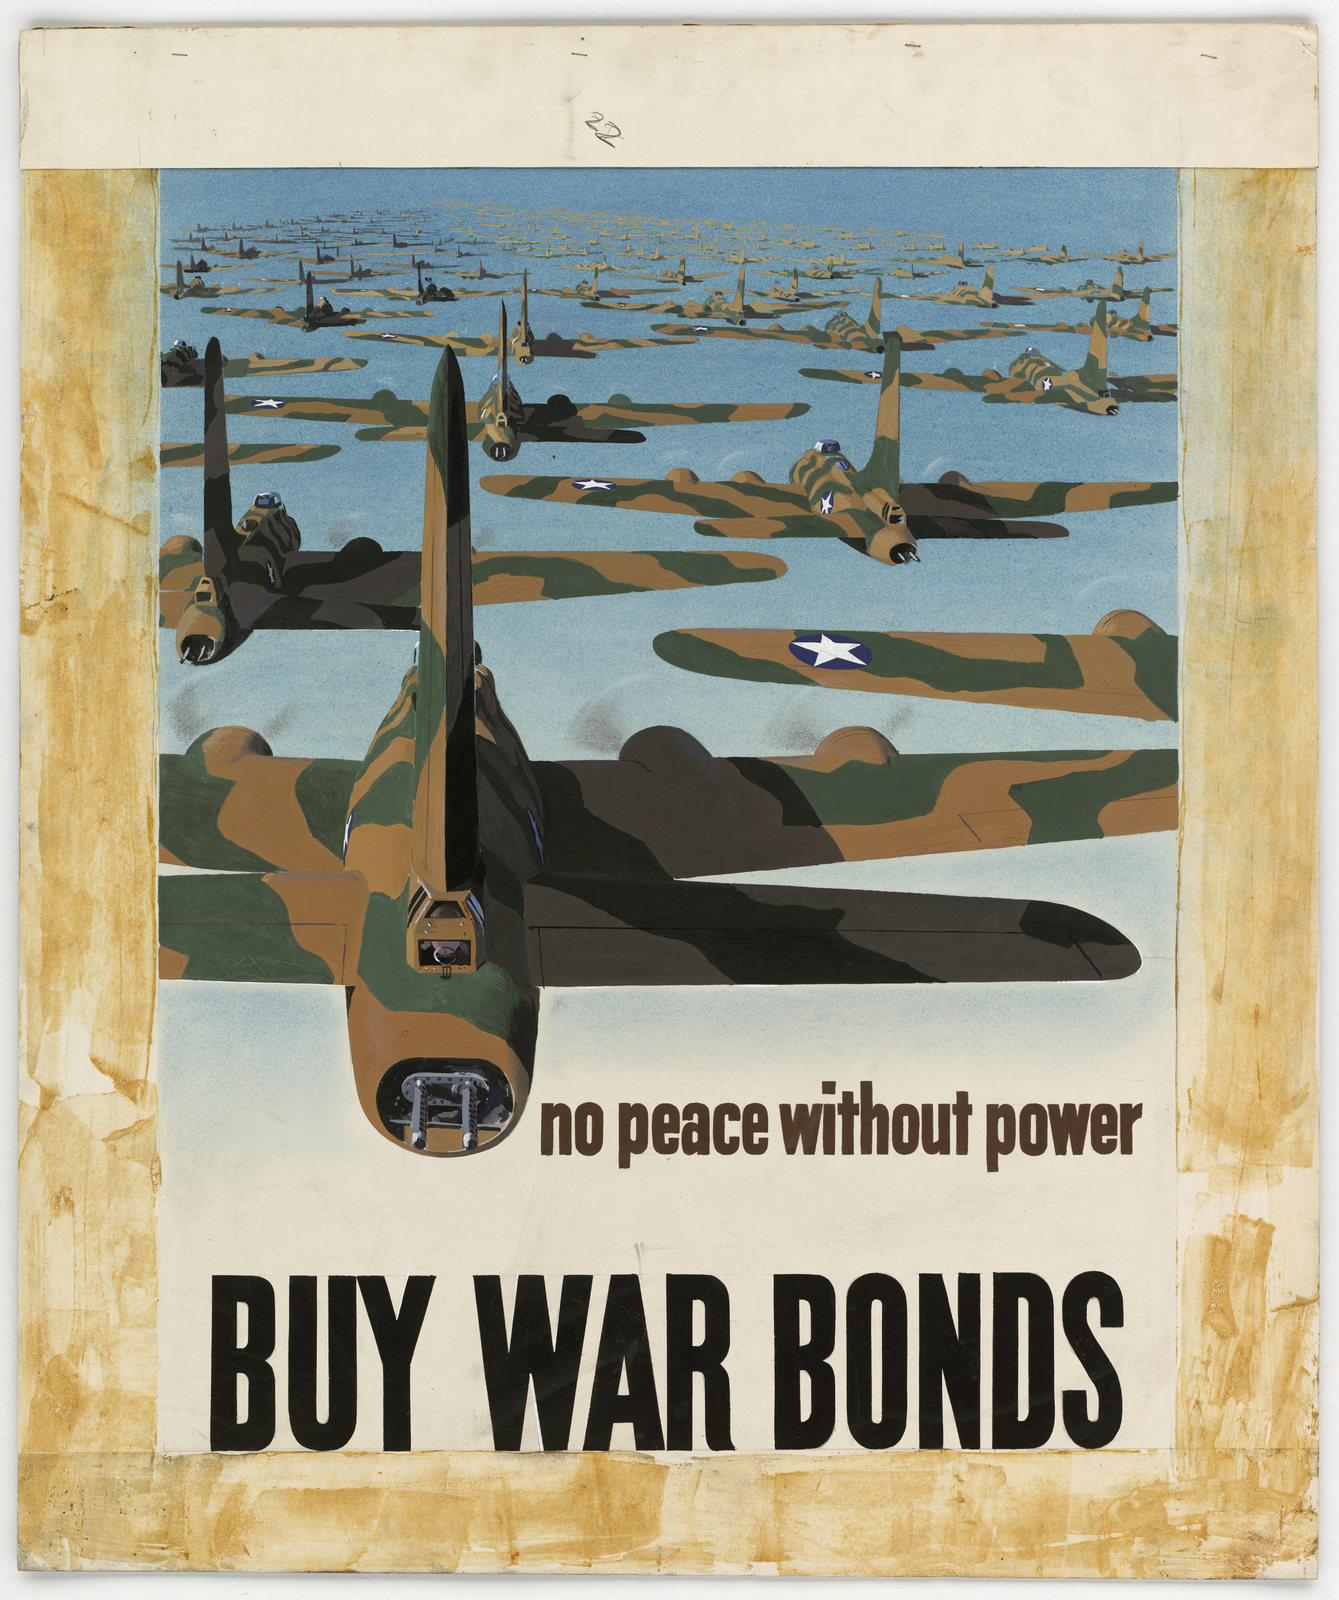 No peace without power.  BUY WAR BONDS